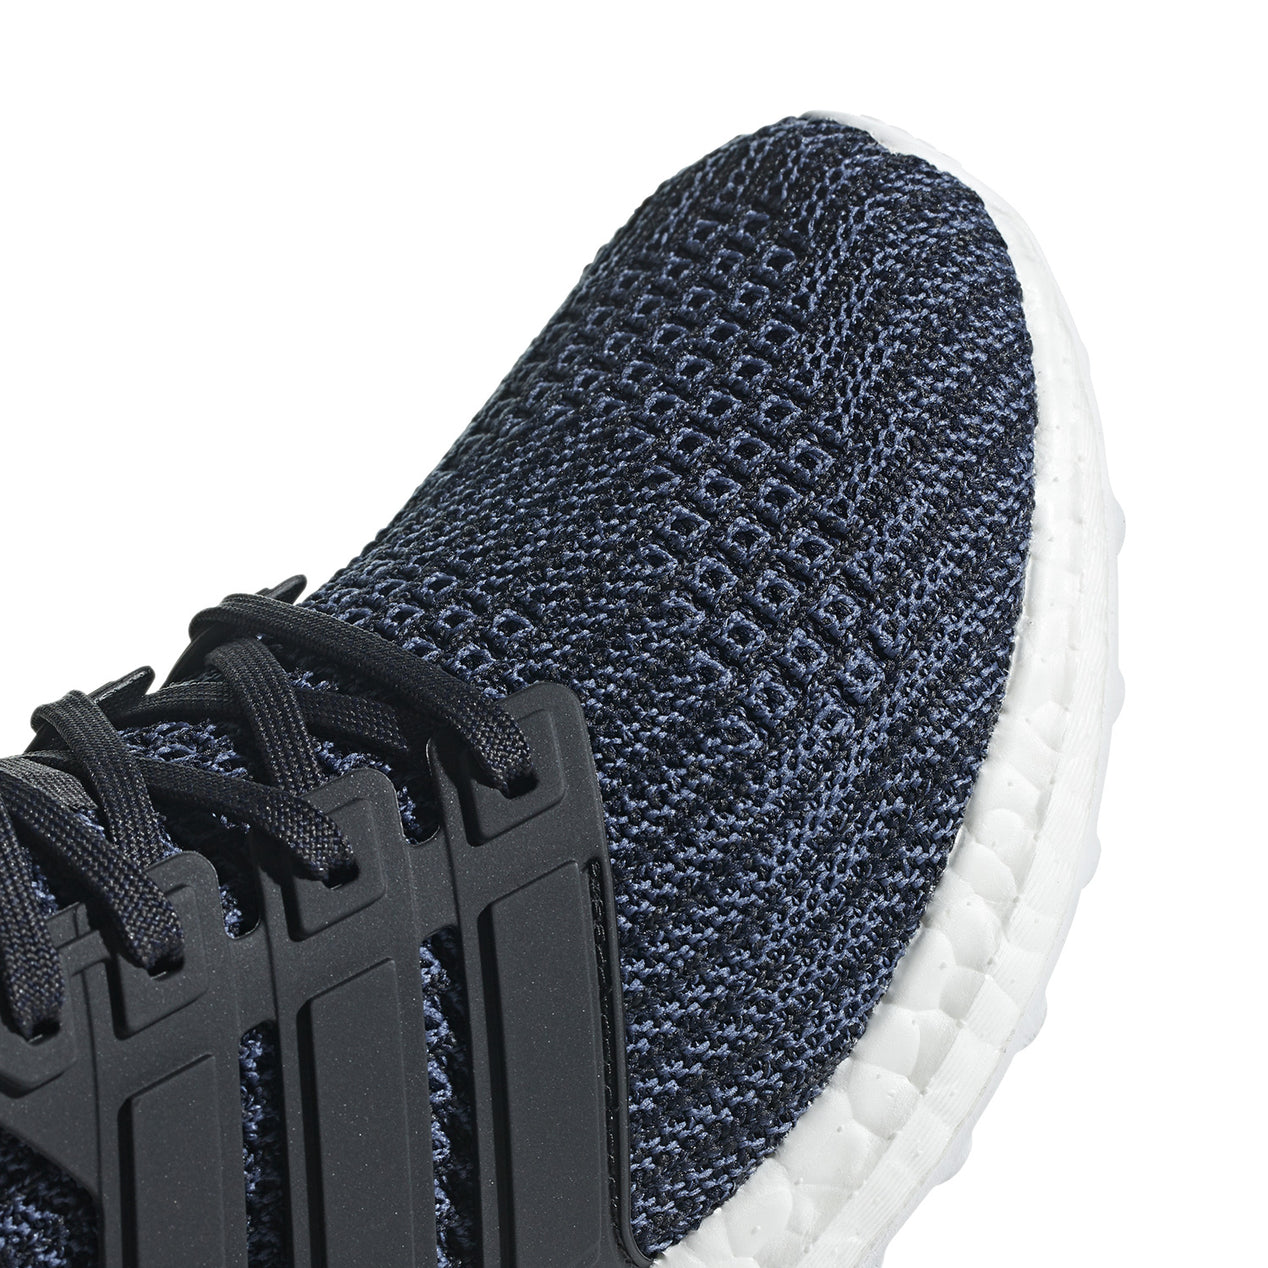 online store cc5e6 2de99 ... UltraBOOST Parley Running Shoes - Women s thumb ...